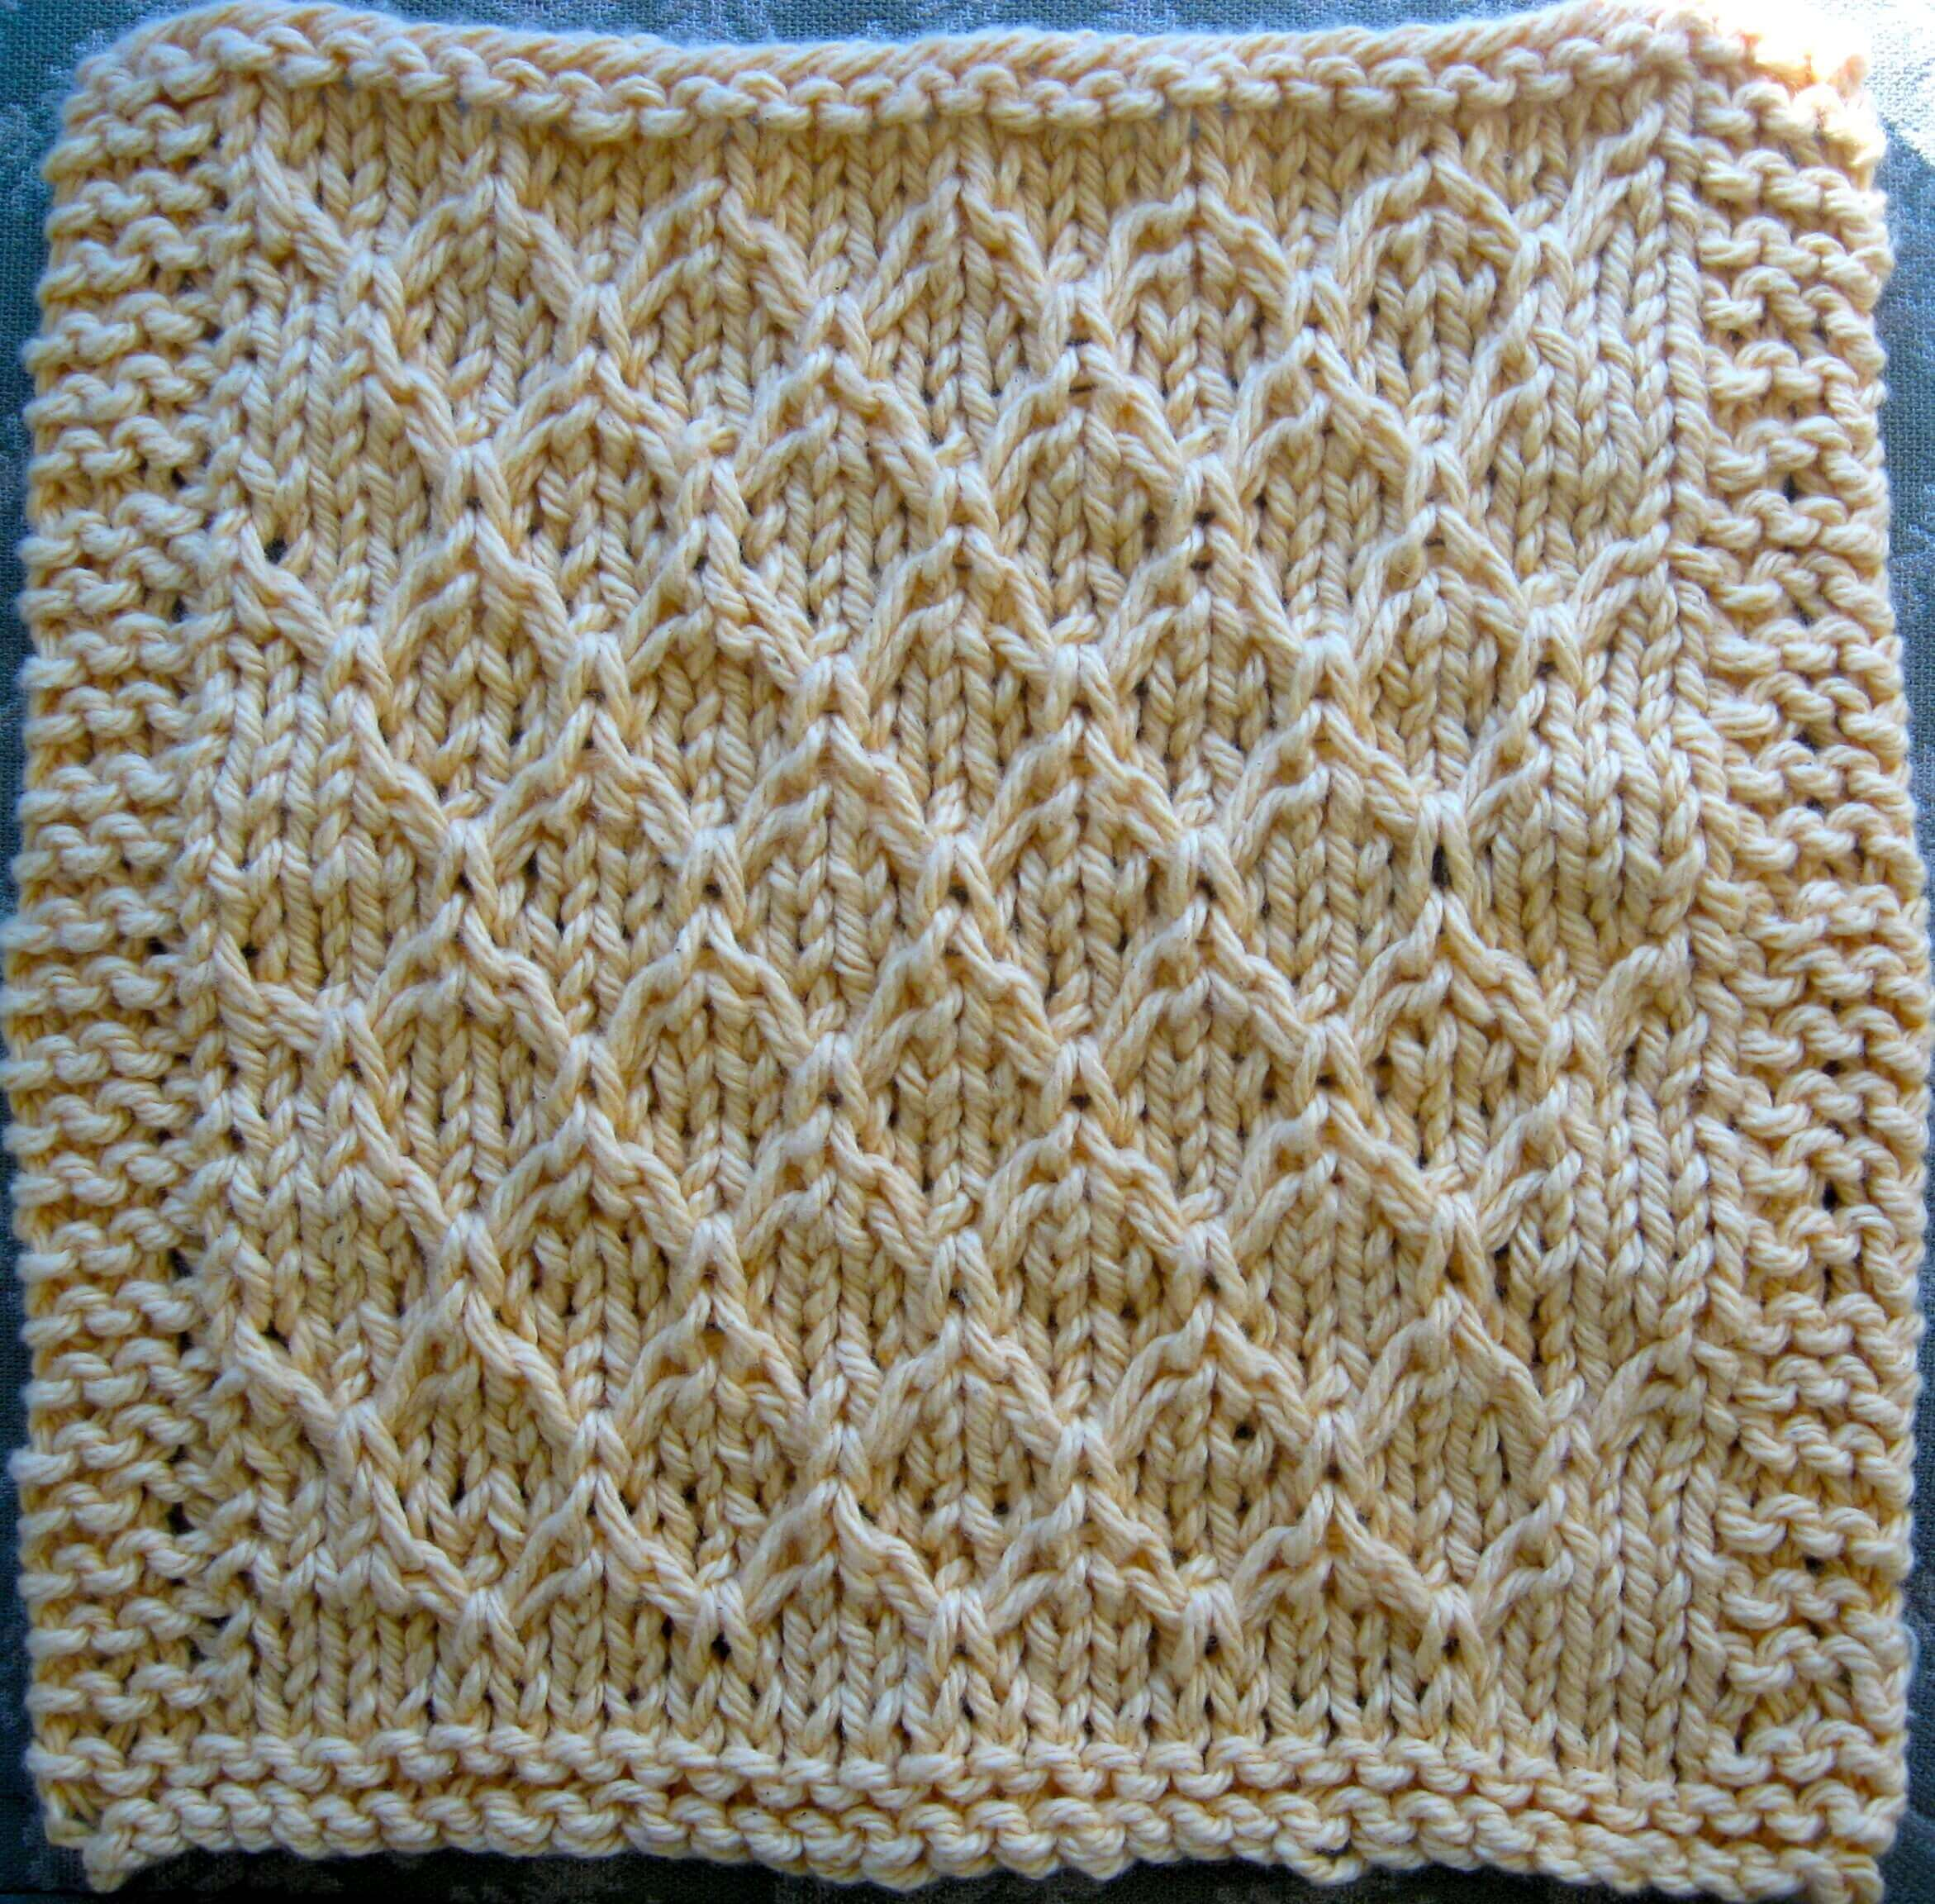 Knitted Honeycomb Dishcloth #1 | Little House in the Suburbs